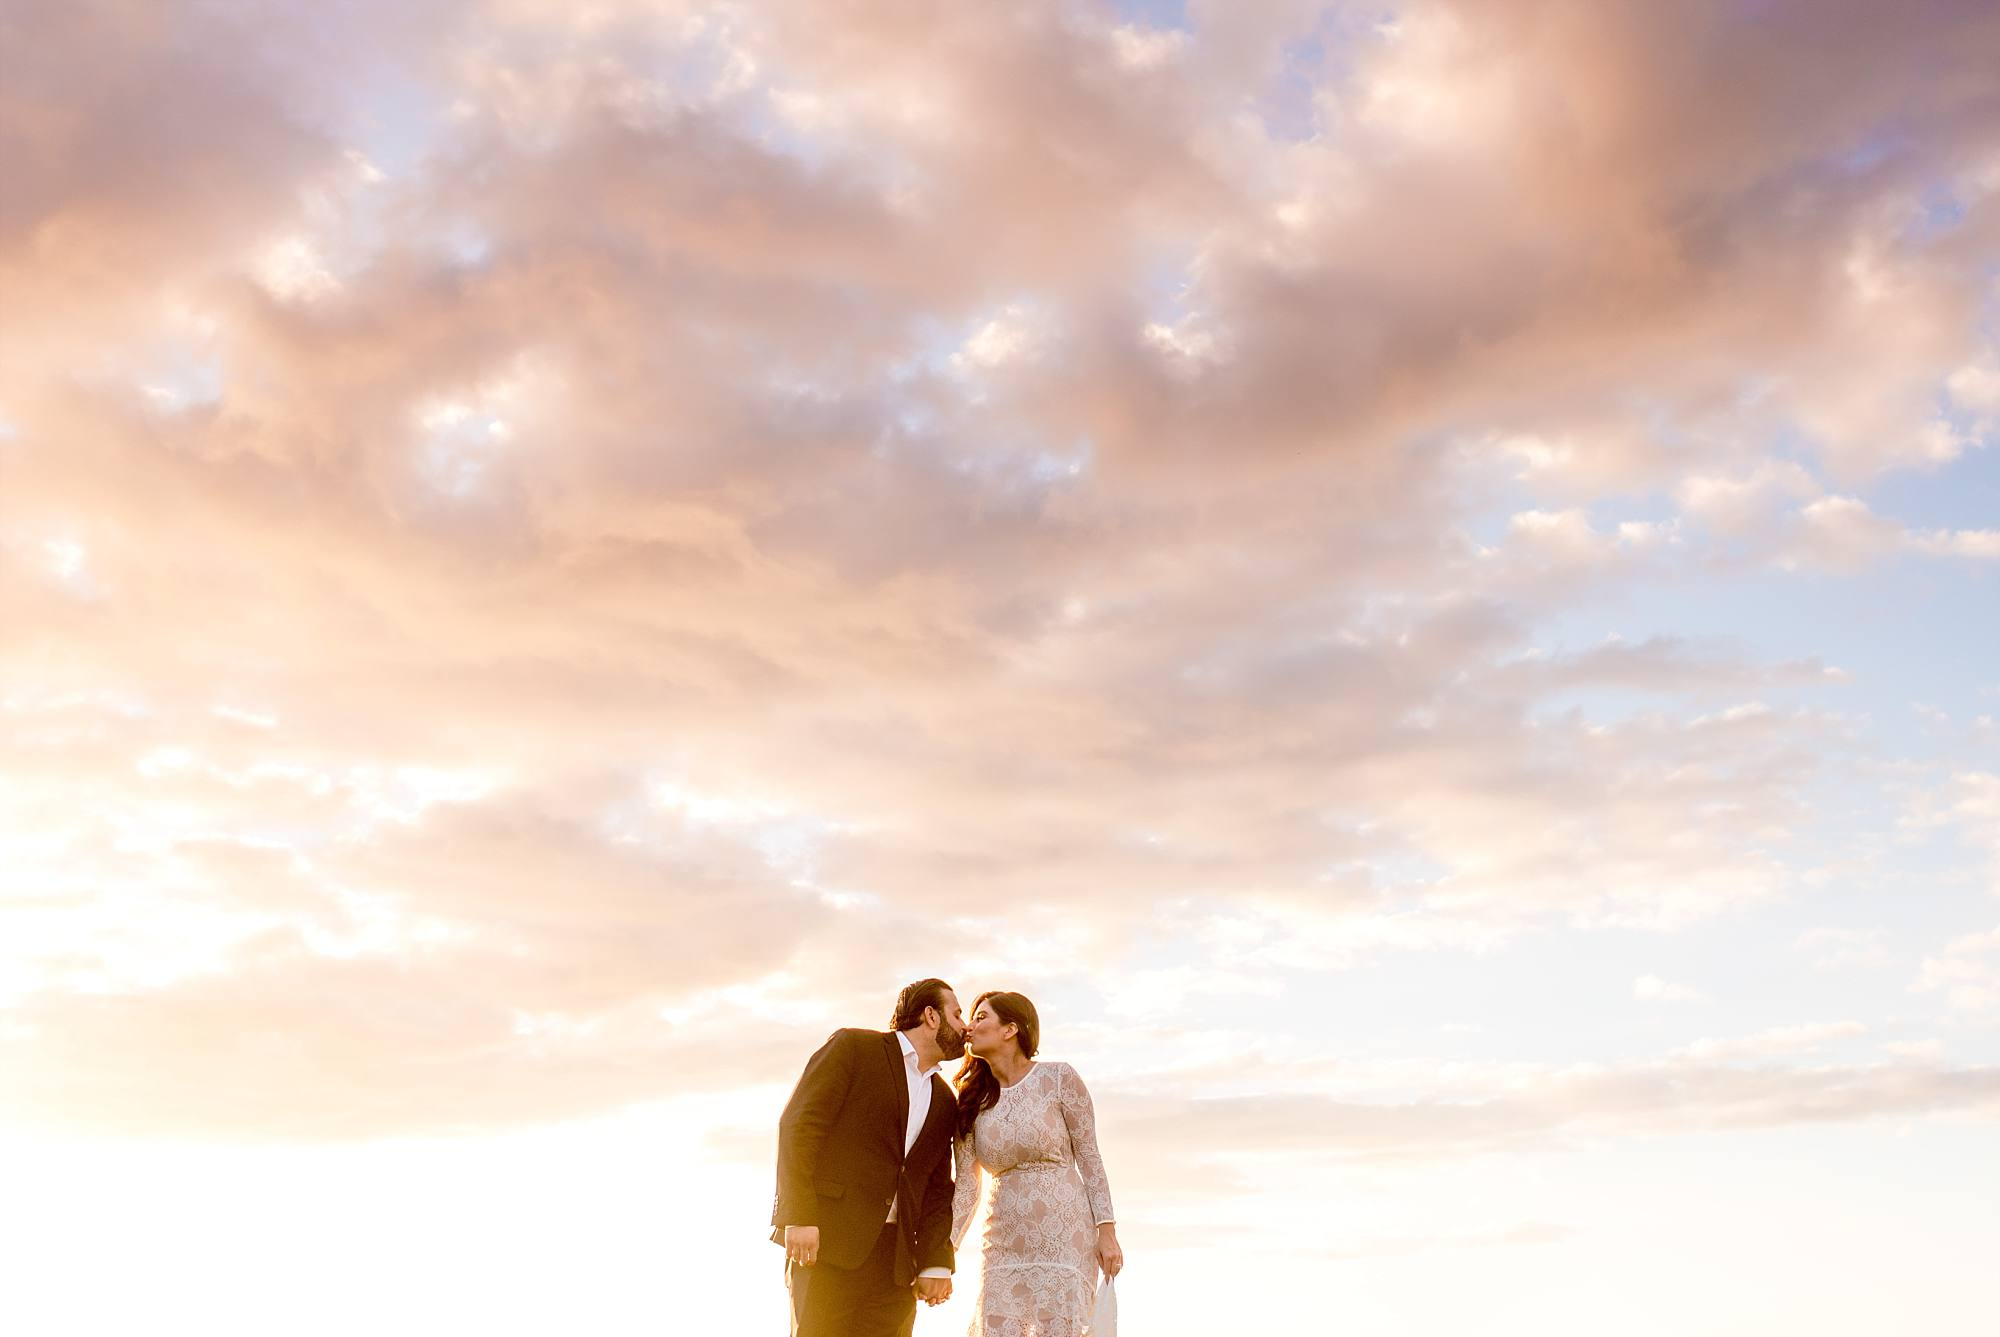 newlyweds kissing with clouds above them